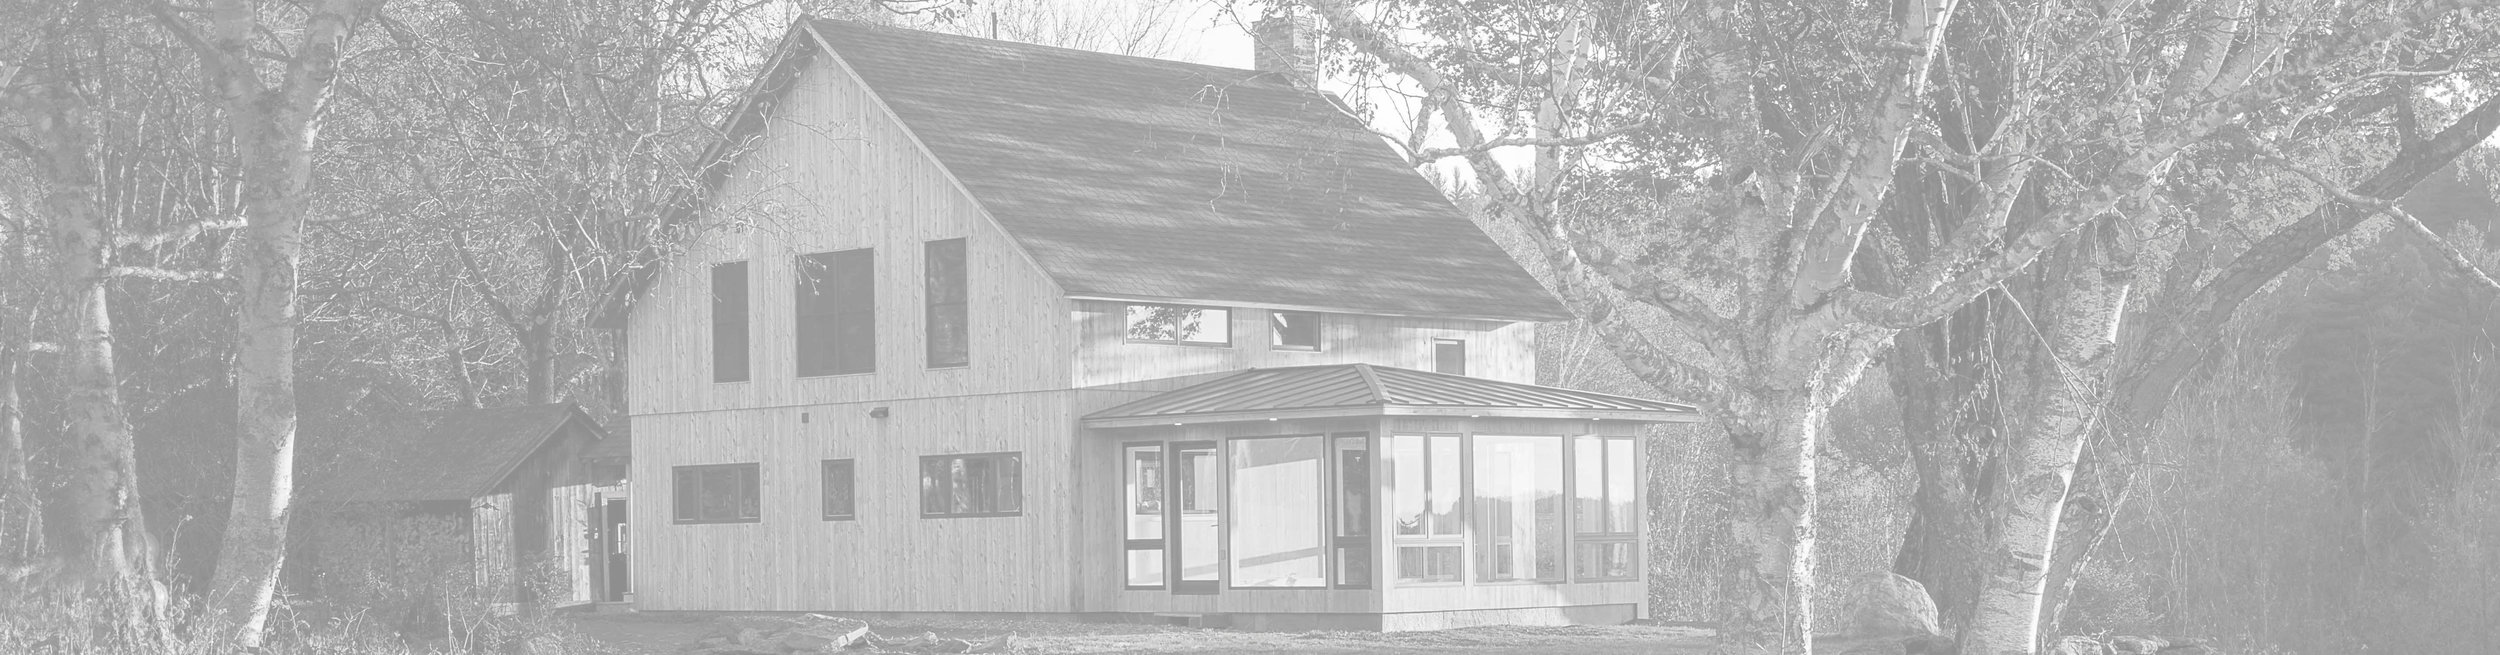 Sikes Road Modern Barn — Vermont Architect